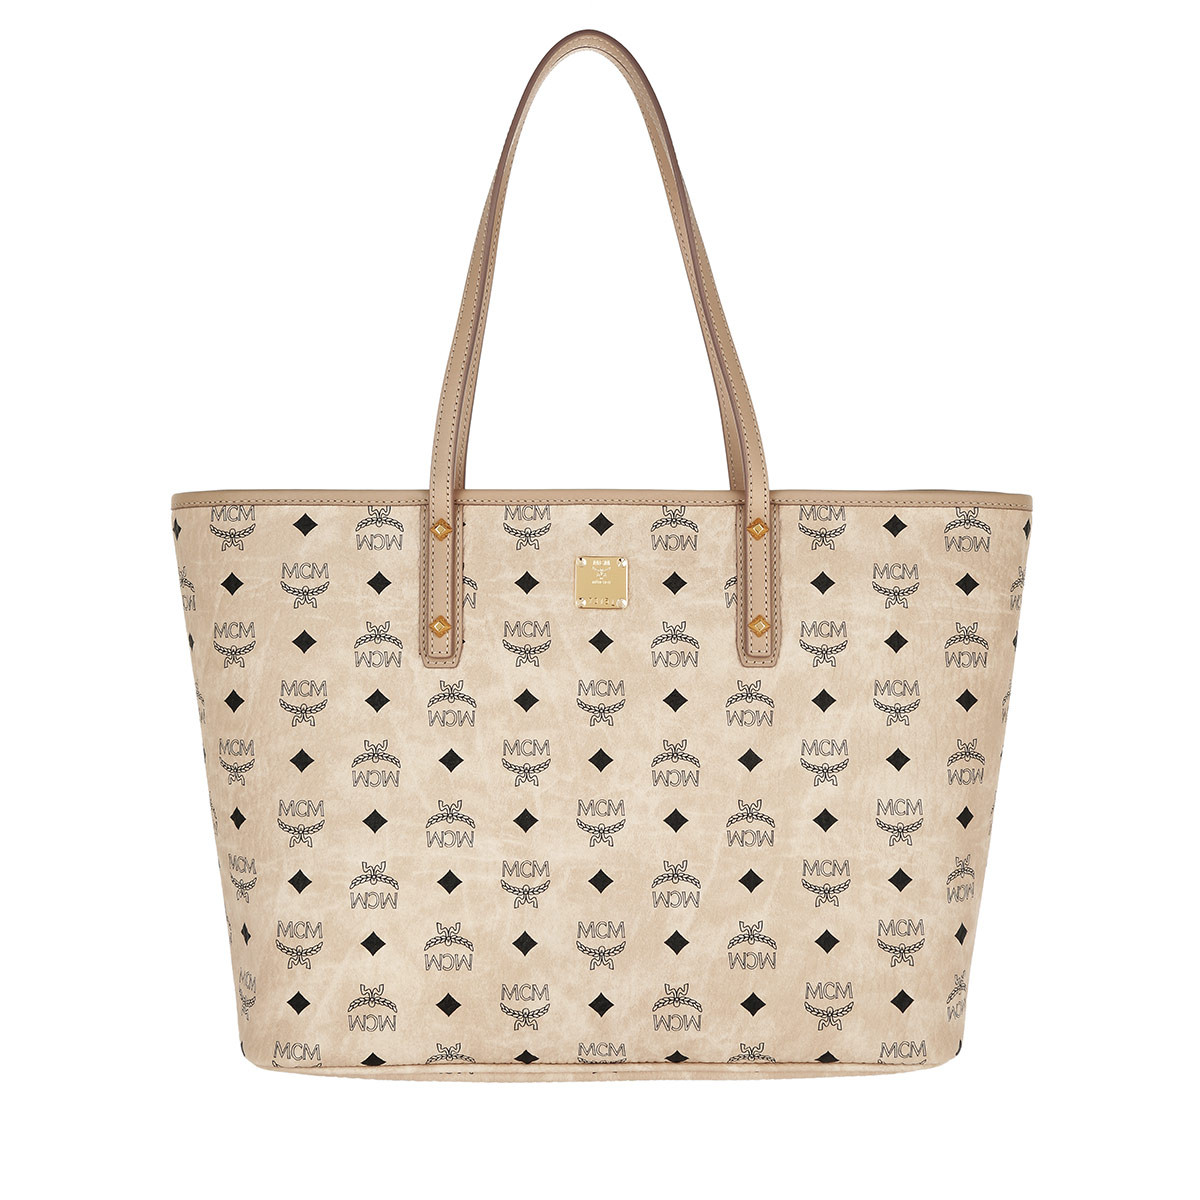 MCM Shopper - Anya Top Zip Shopper Medium Beige - in beige - für Damen